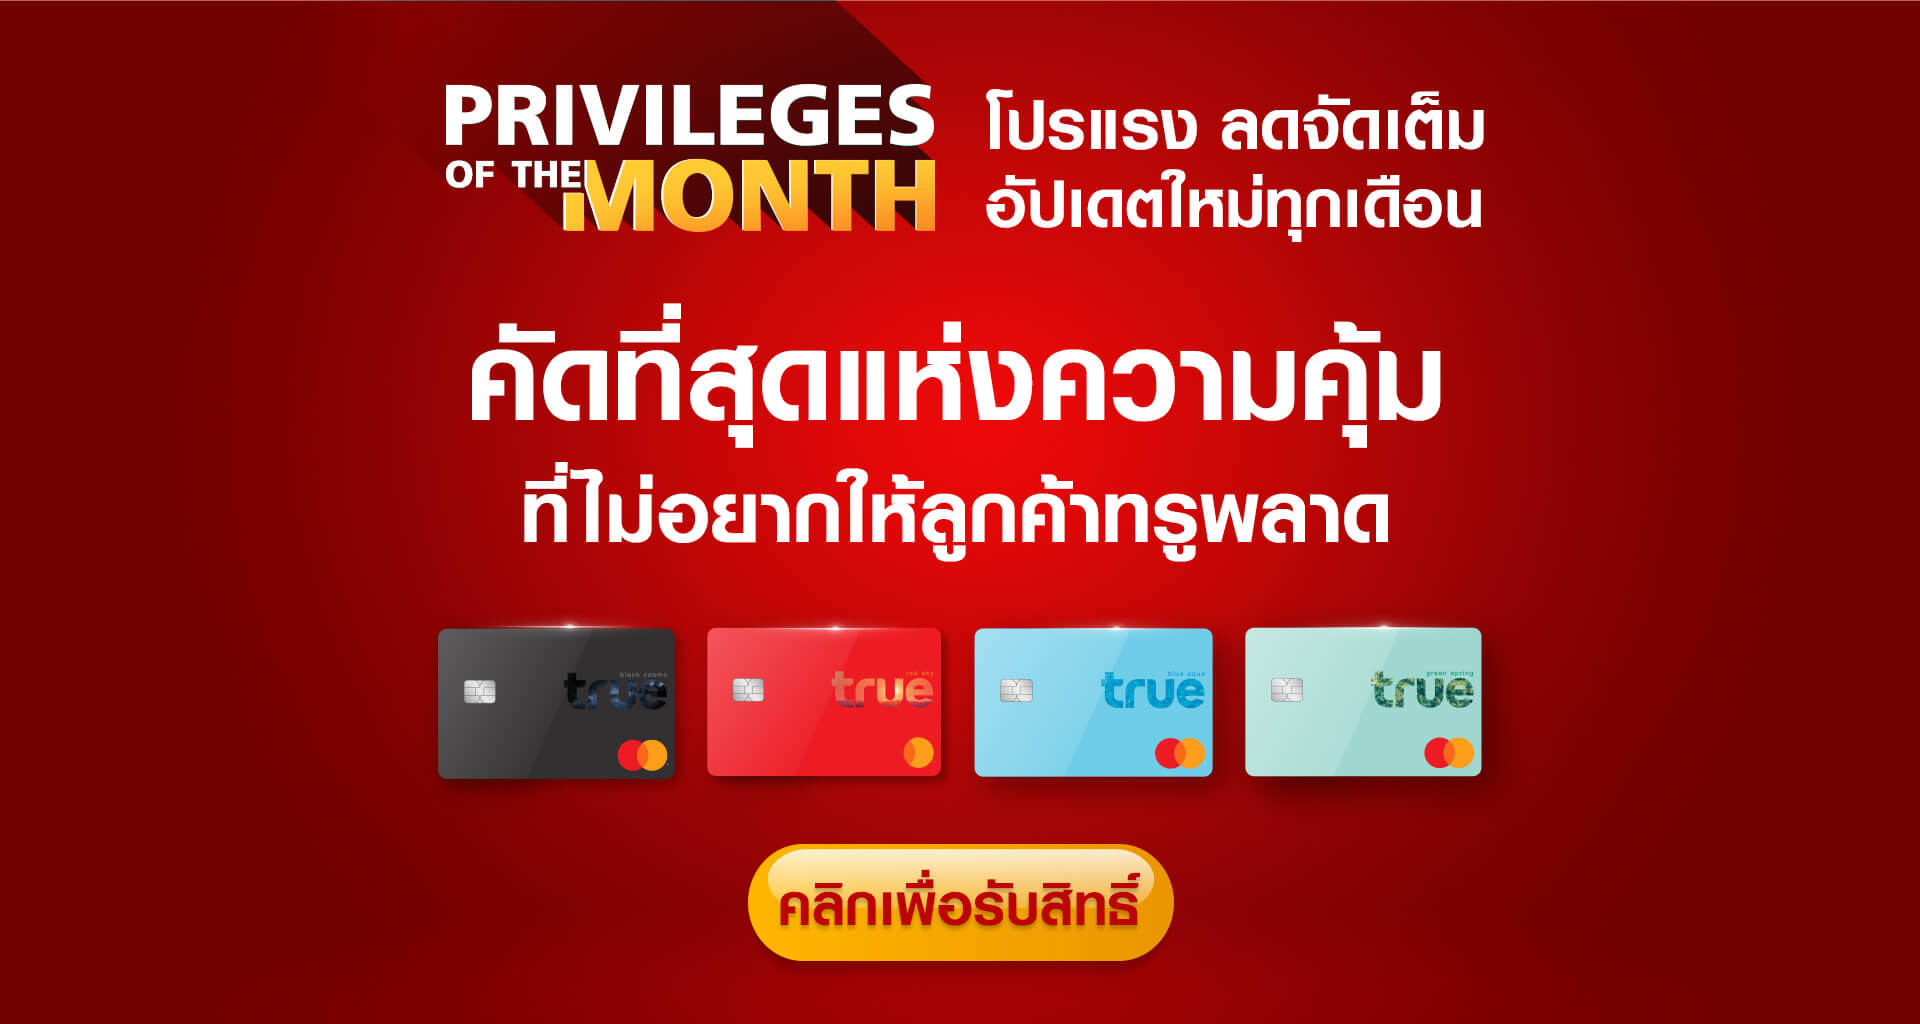 Privilege of the month